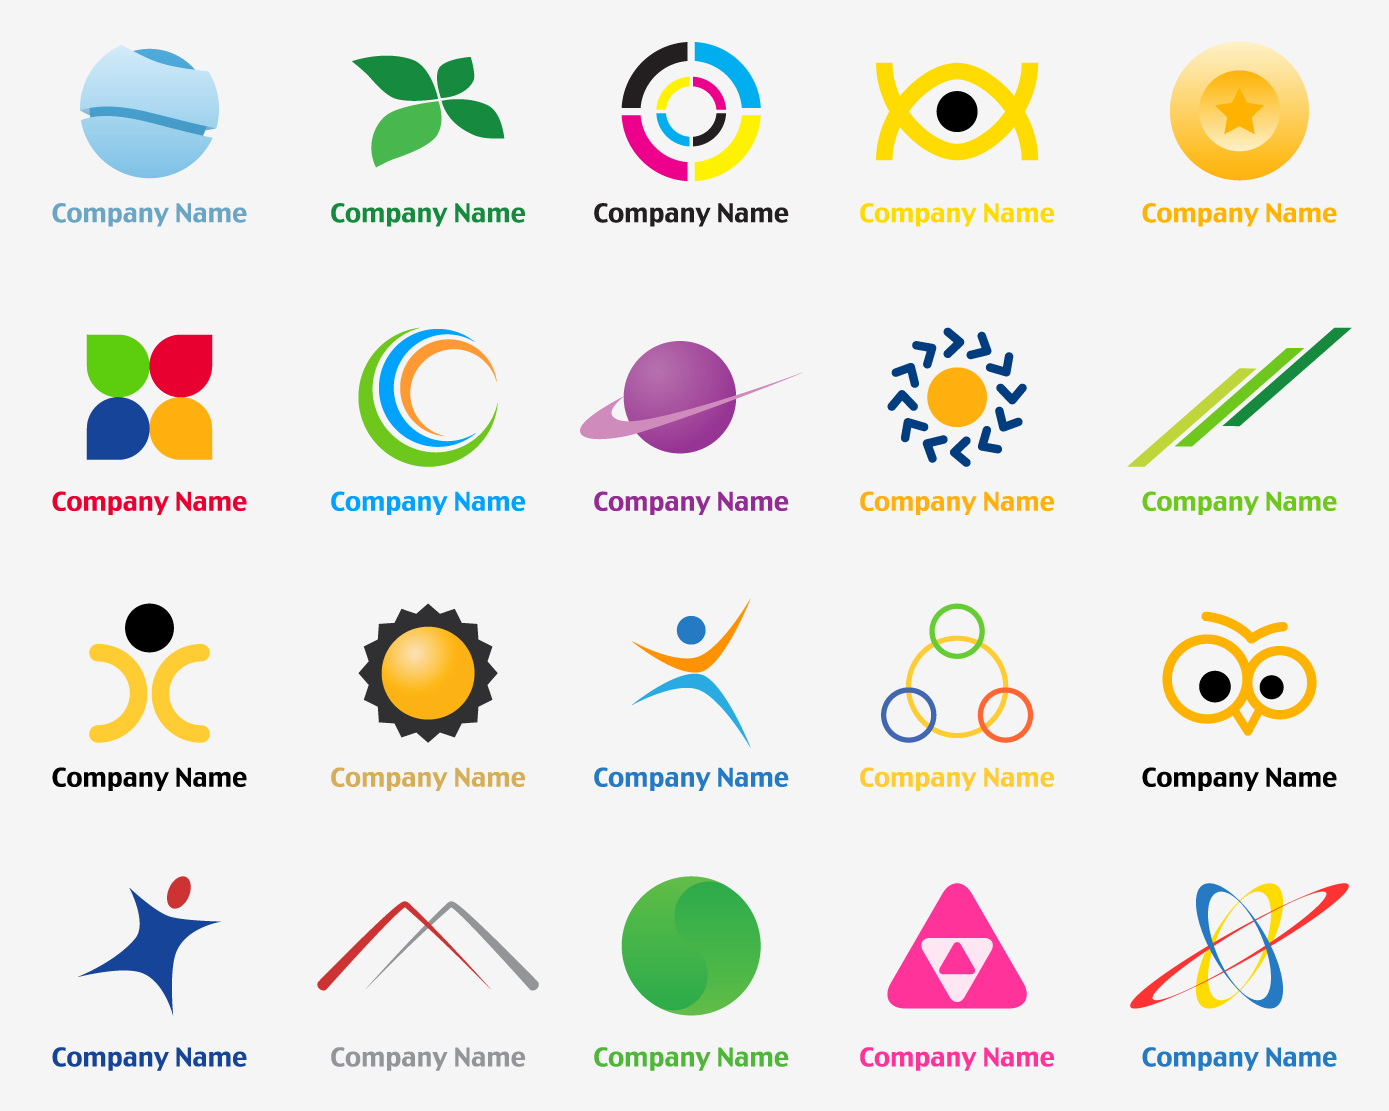 20-Vector-logo-design-templates.jpg (1389×1111) | Graphic ...